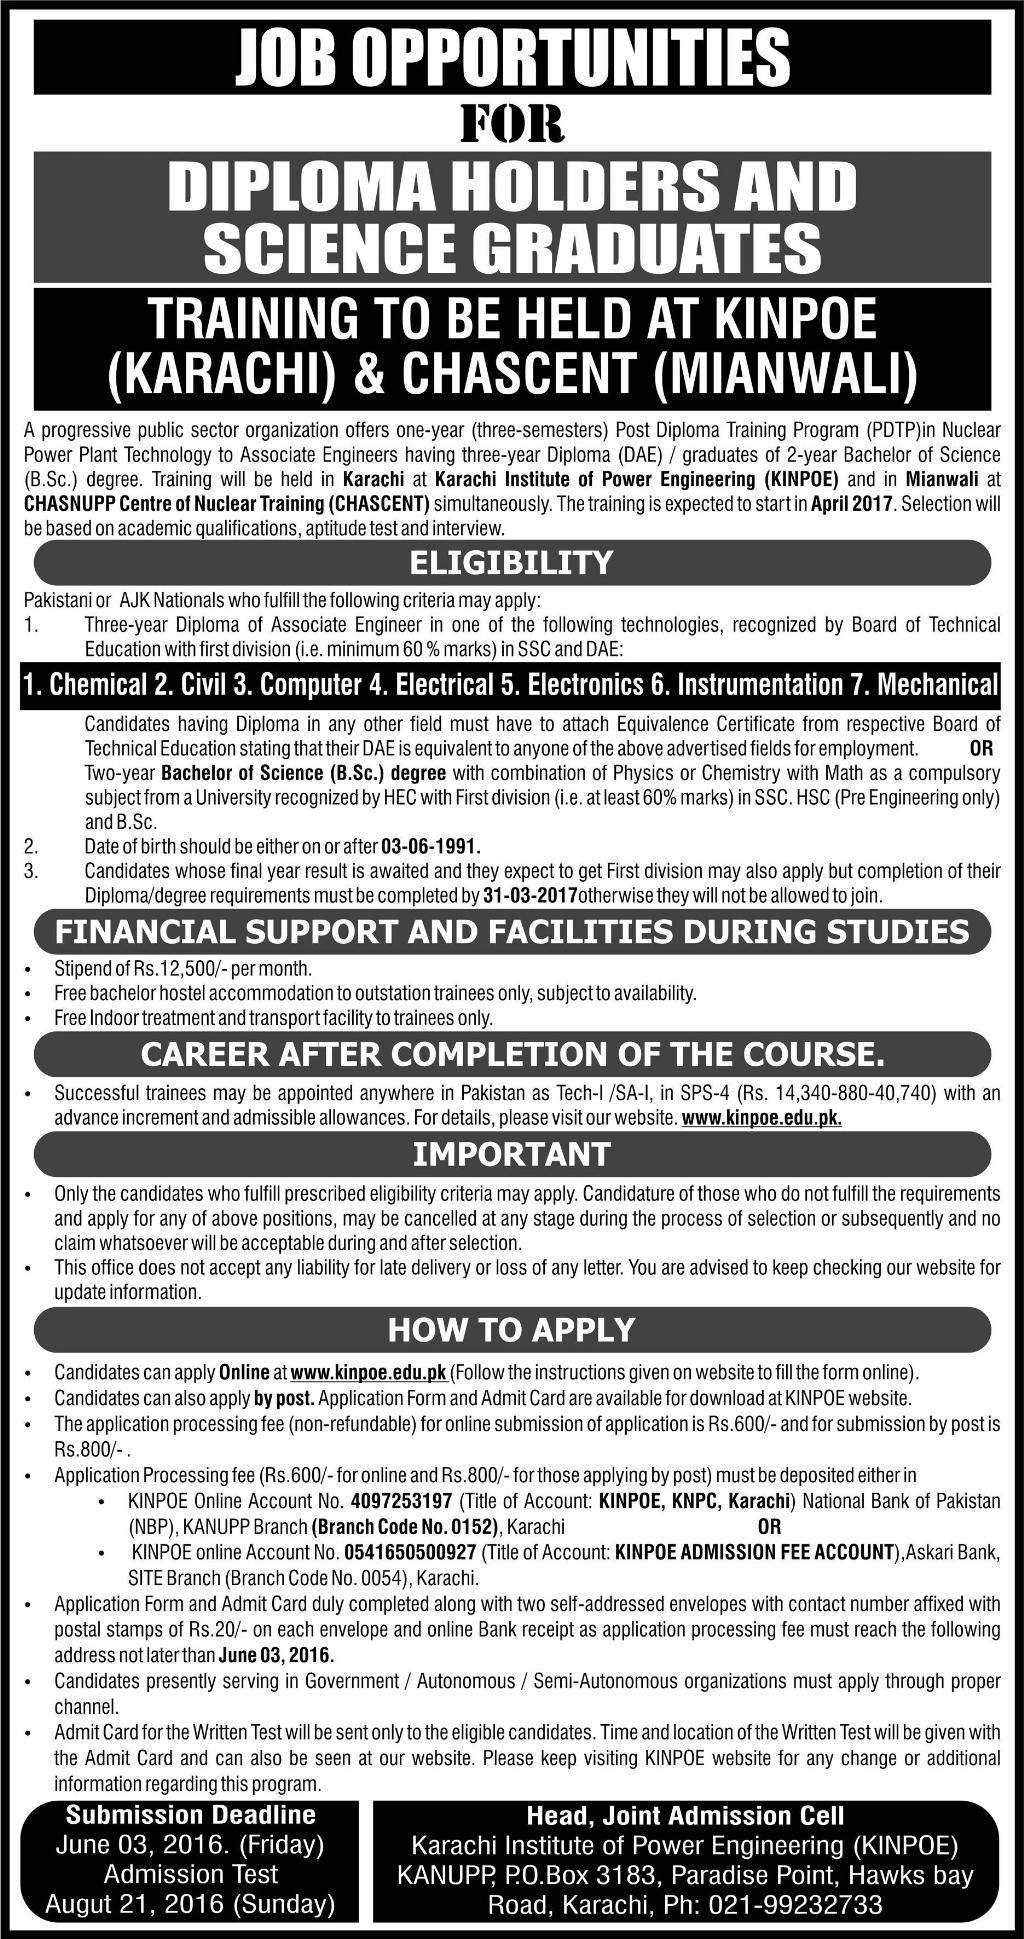 Career Opportunities for Diploma Holders at KINPOE and CHASCENT